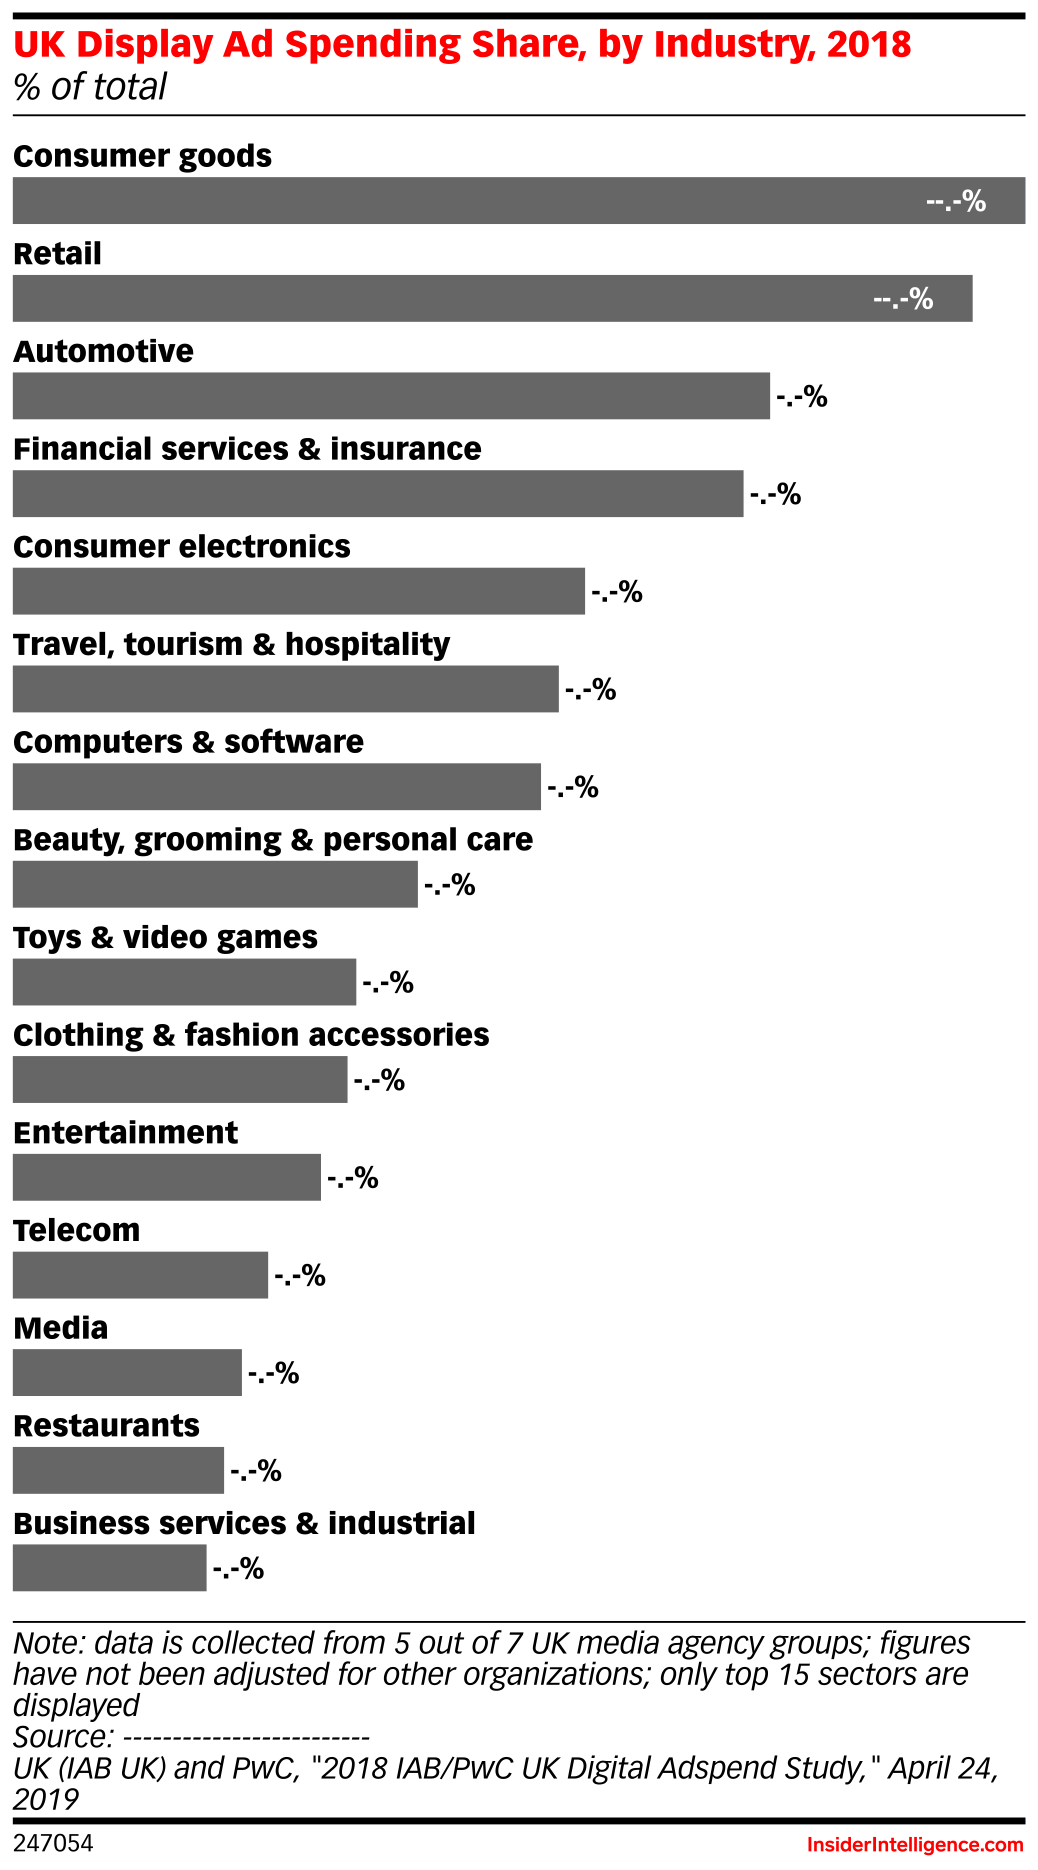 UK Display Ad Spending Share, by Industry, 2018 (% of total)